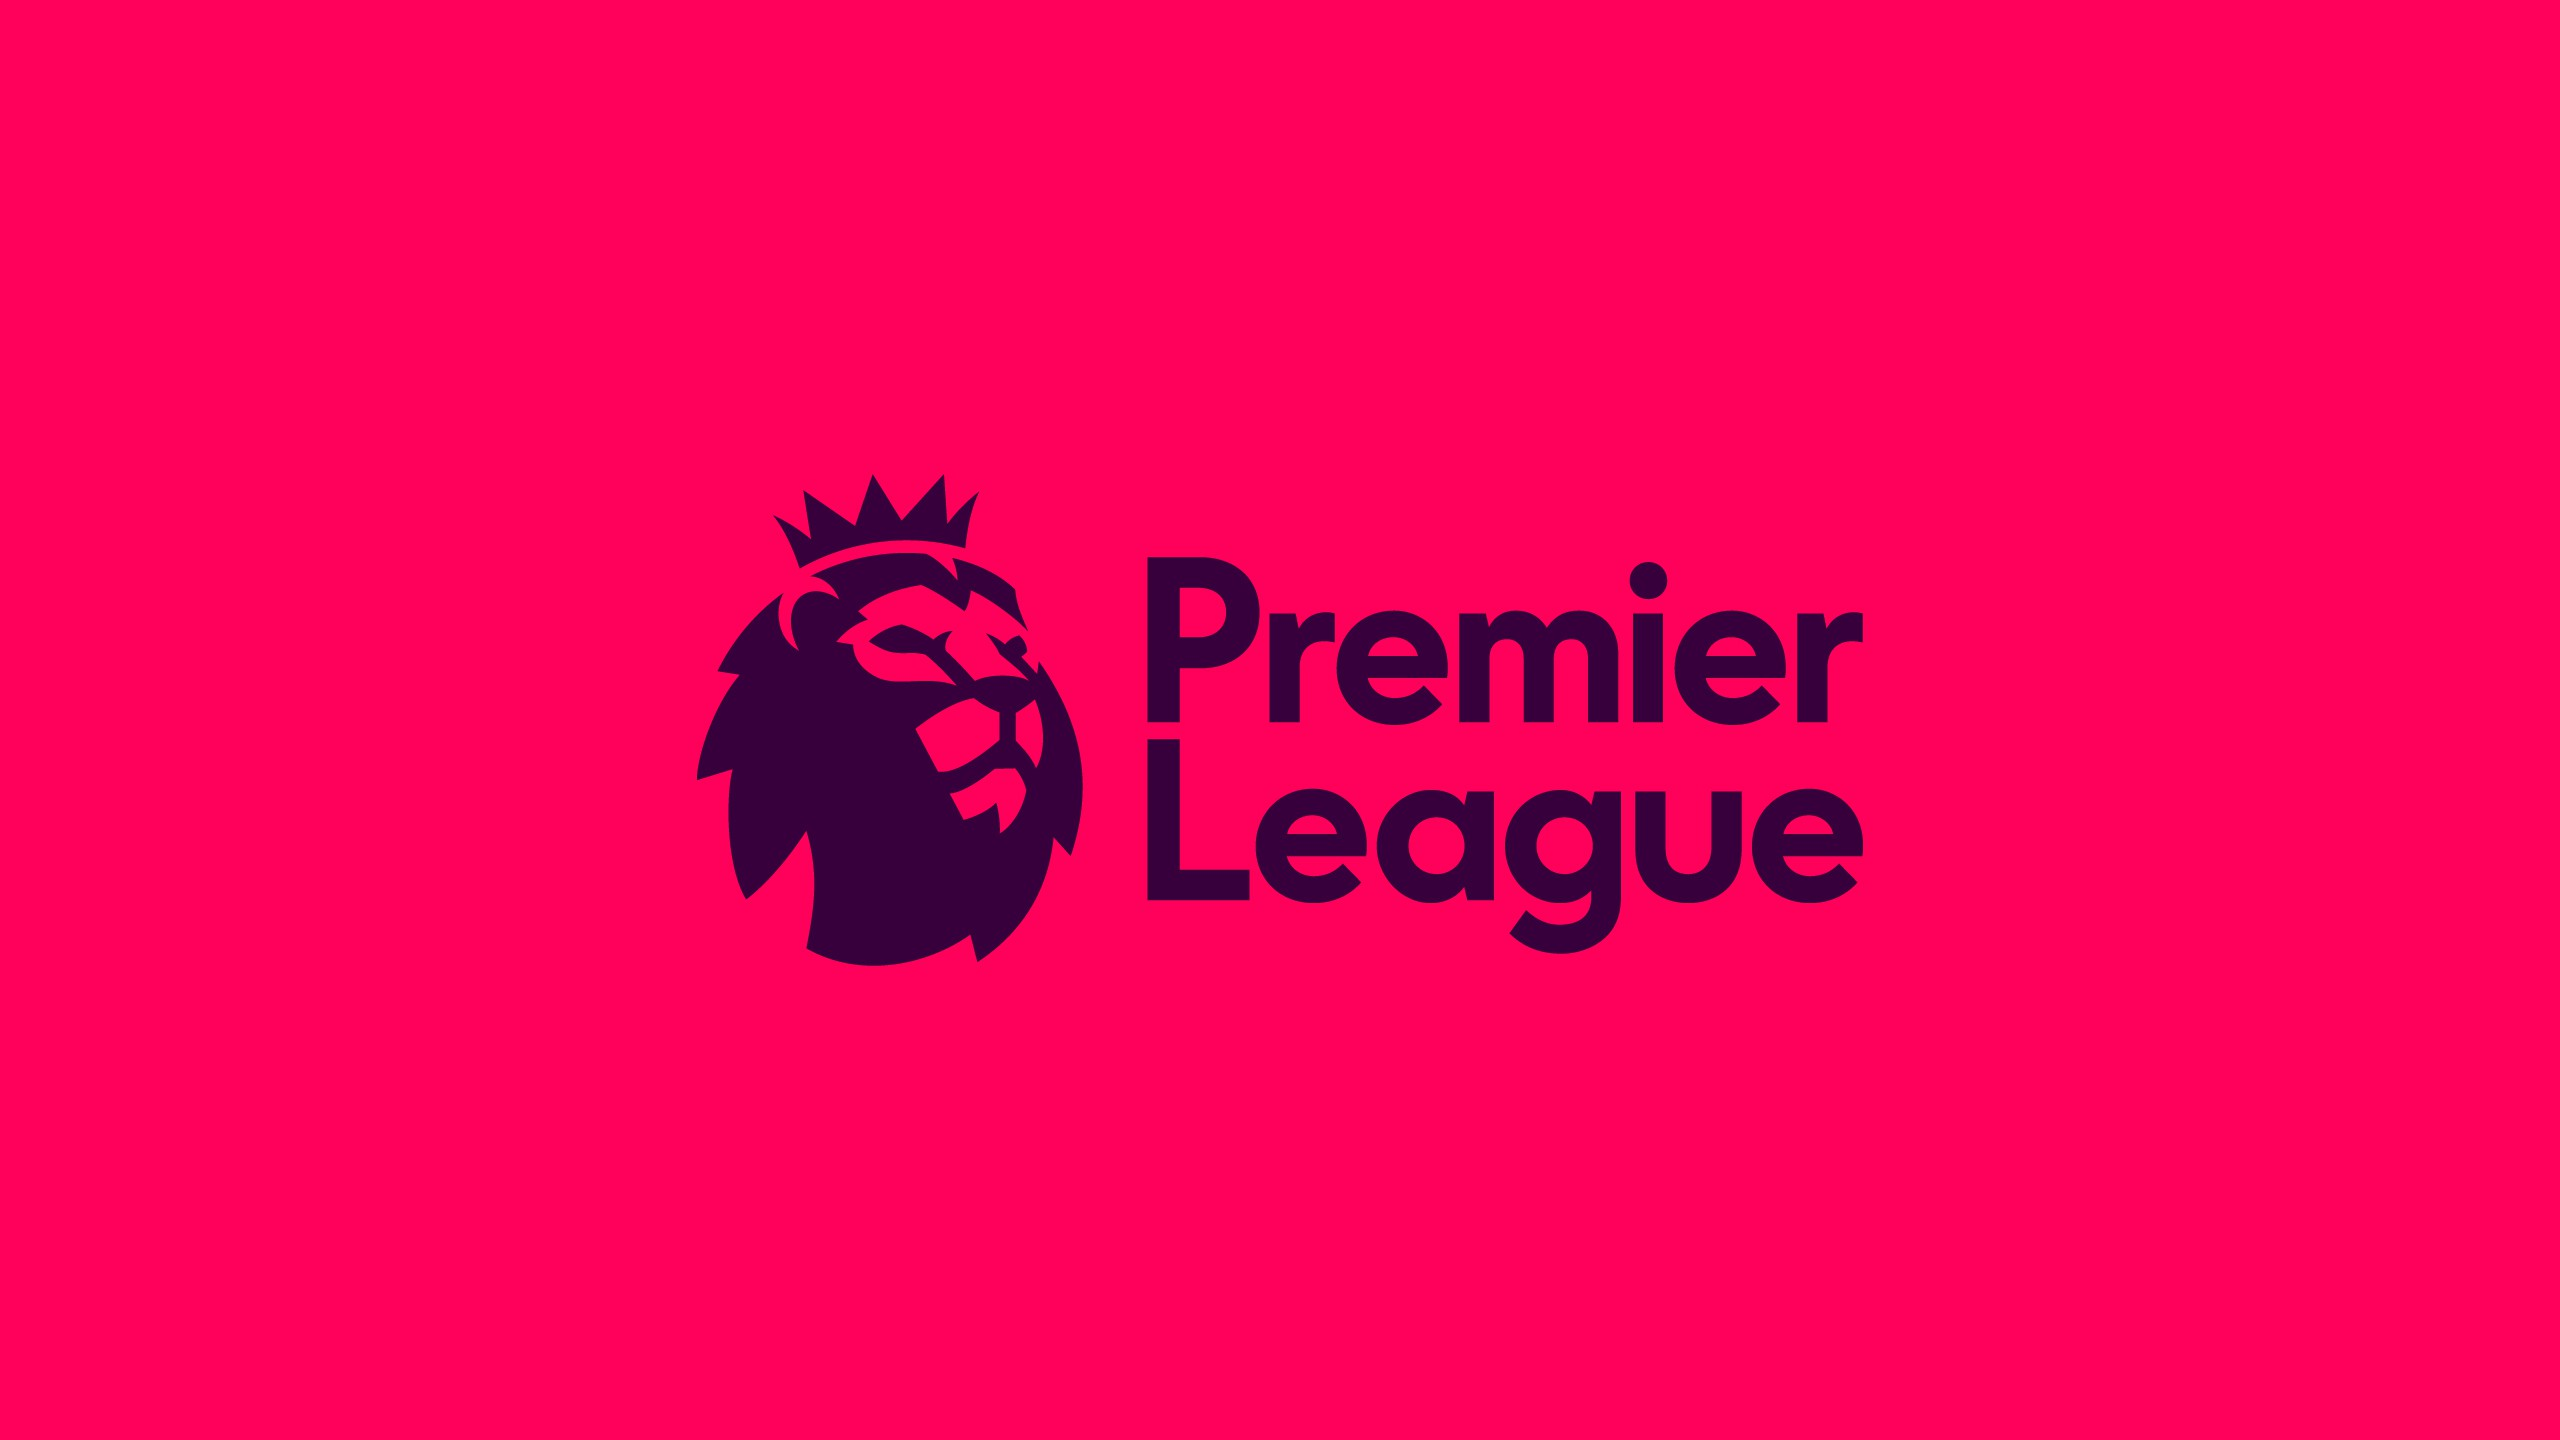 feat football prem league logo pink